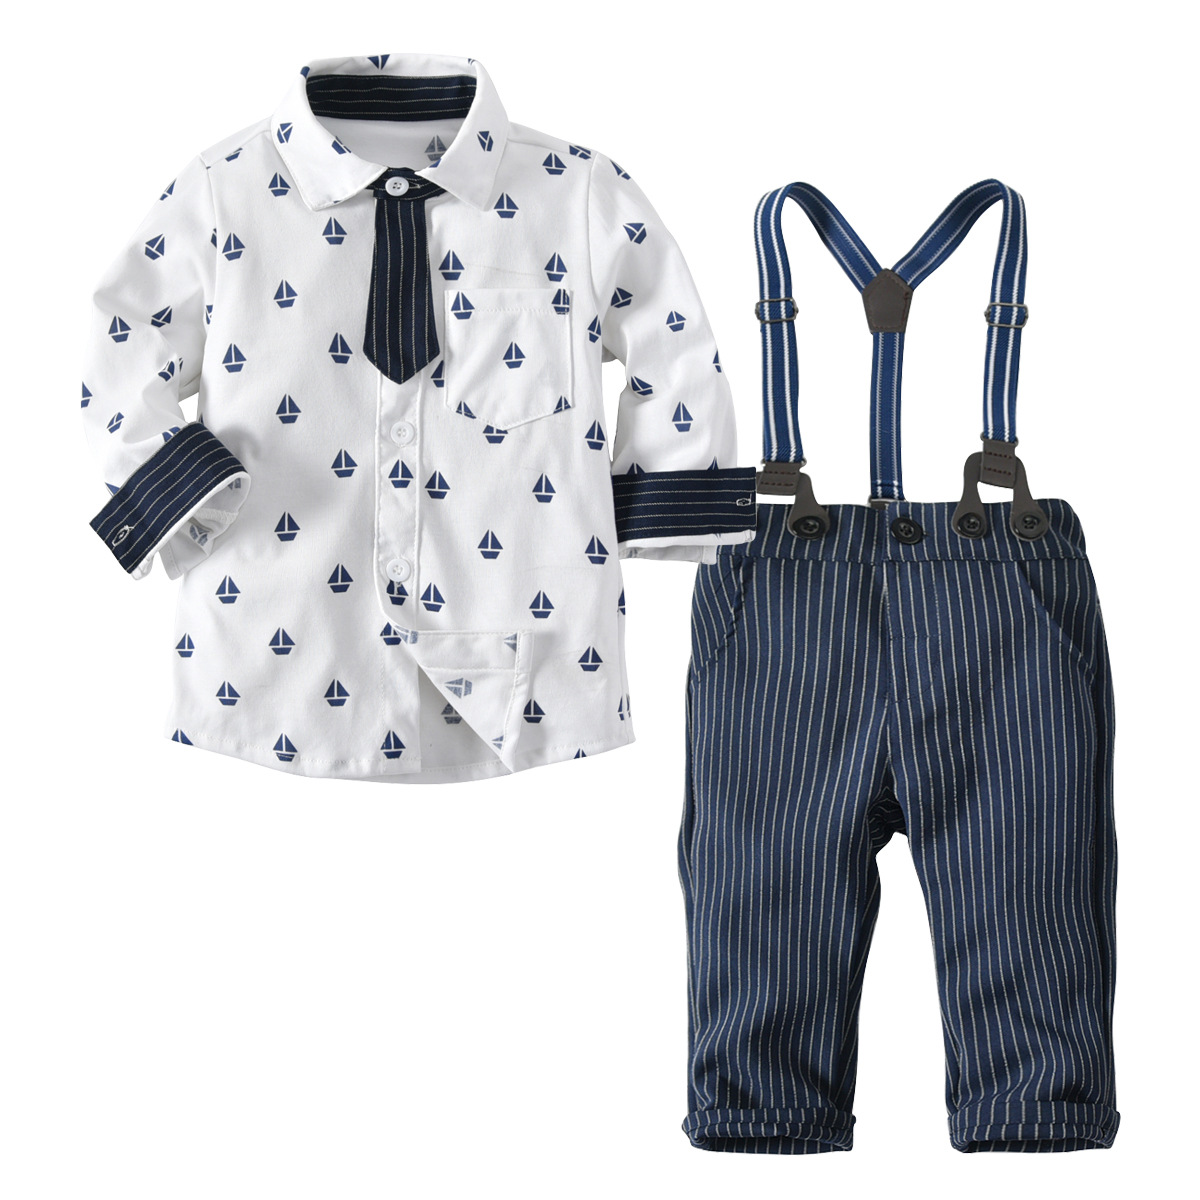 Baby Boys Clothes Sets Gentleman Shirt Removable Overalls Pants 2 Pcs Children Suits Toddler Boys Clothing Set Autumn 4 Years baby boys suits clothes gentleman suit toddler boys clothing infant clothing wedding birthday cotton summer children s suits